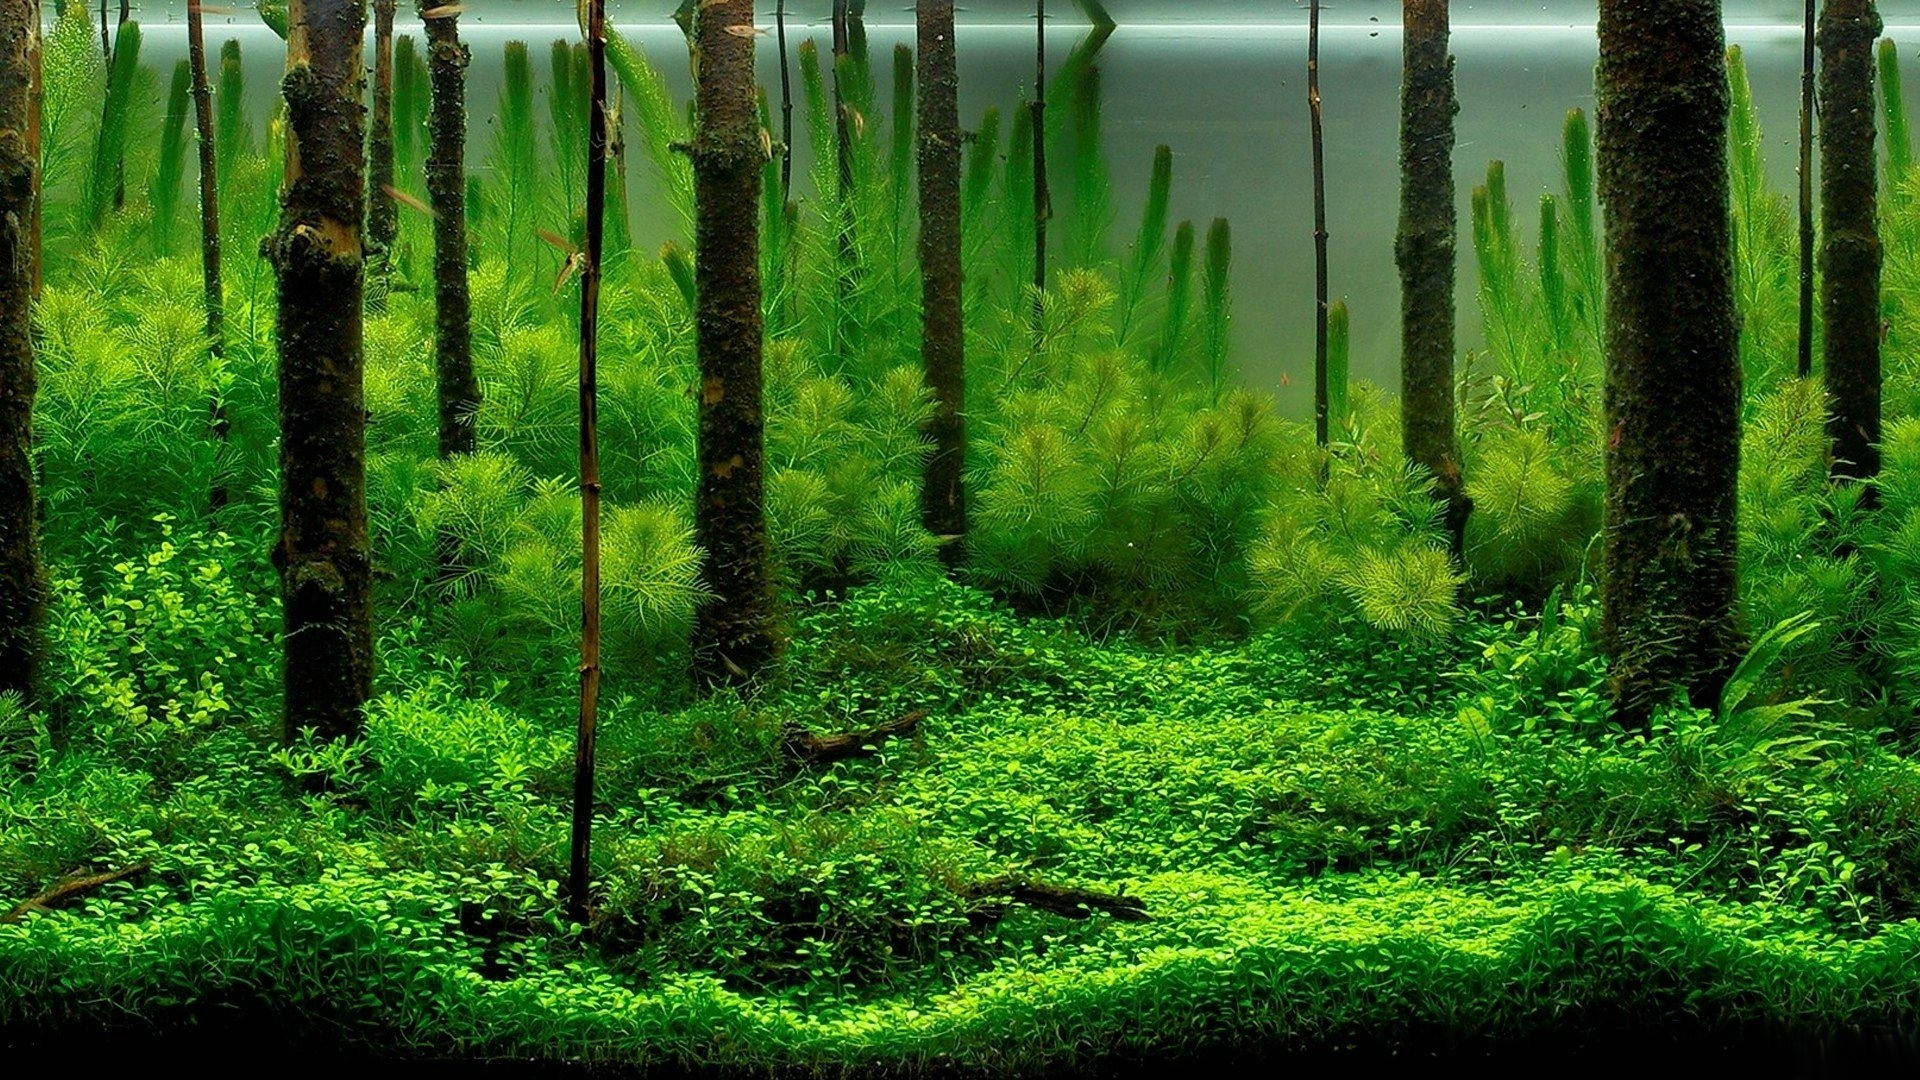 23244 download wallpaper Plants, Aquariums screensavers and pictures for free